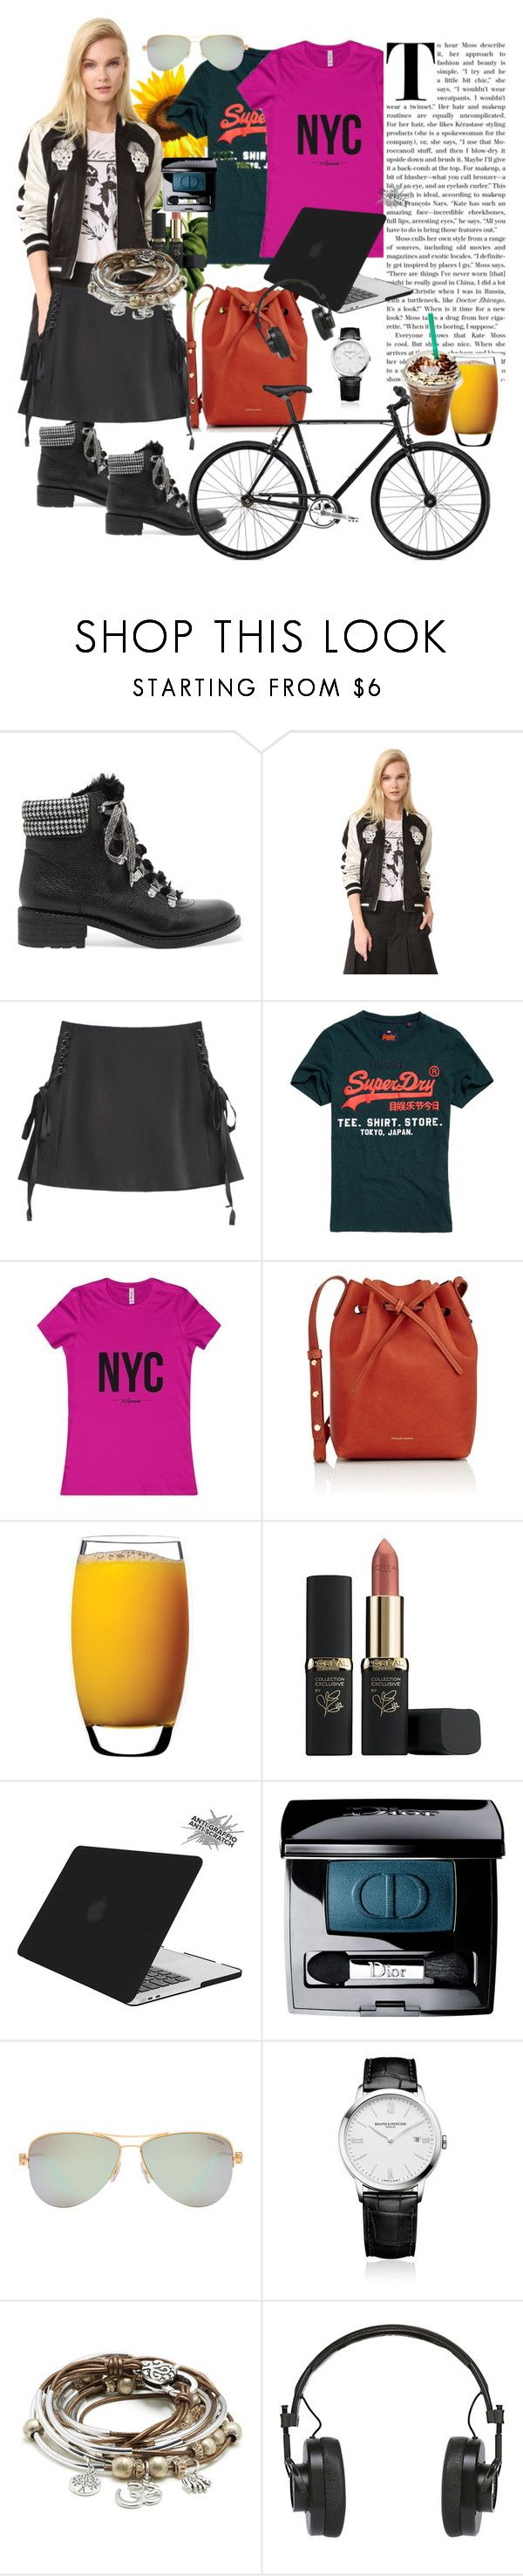 """Cool"" by silvia-viotti ❤ liked on Polyvore featuring Sam Edelman, R13, Superdry, Mansur Gavriel, Luigi Bormioli, L'Oréal Paris, Tucano, Christian Dior, Tiffany & Co. and Baume & Mercier"